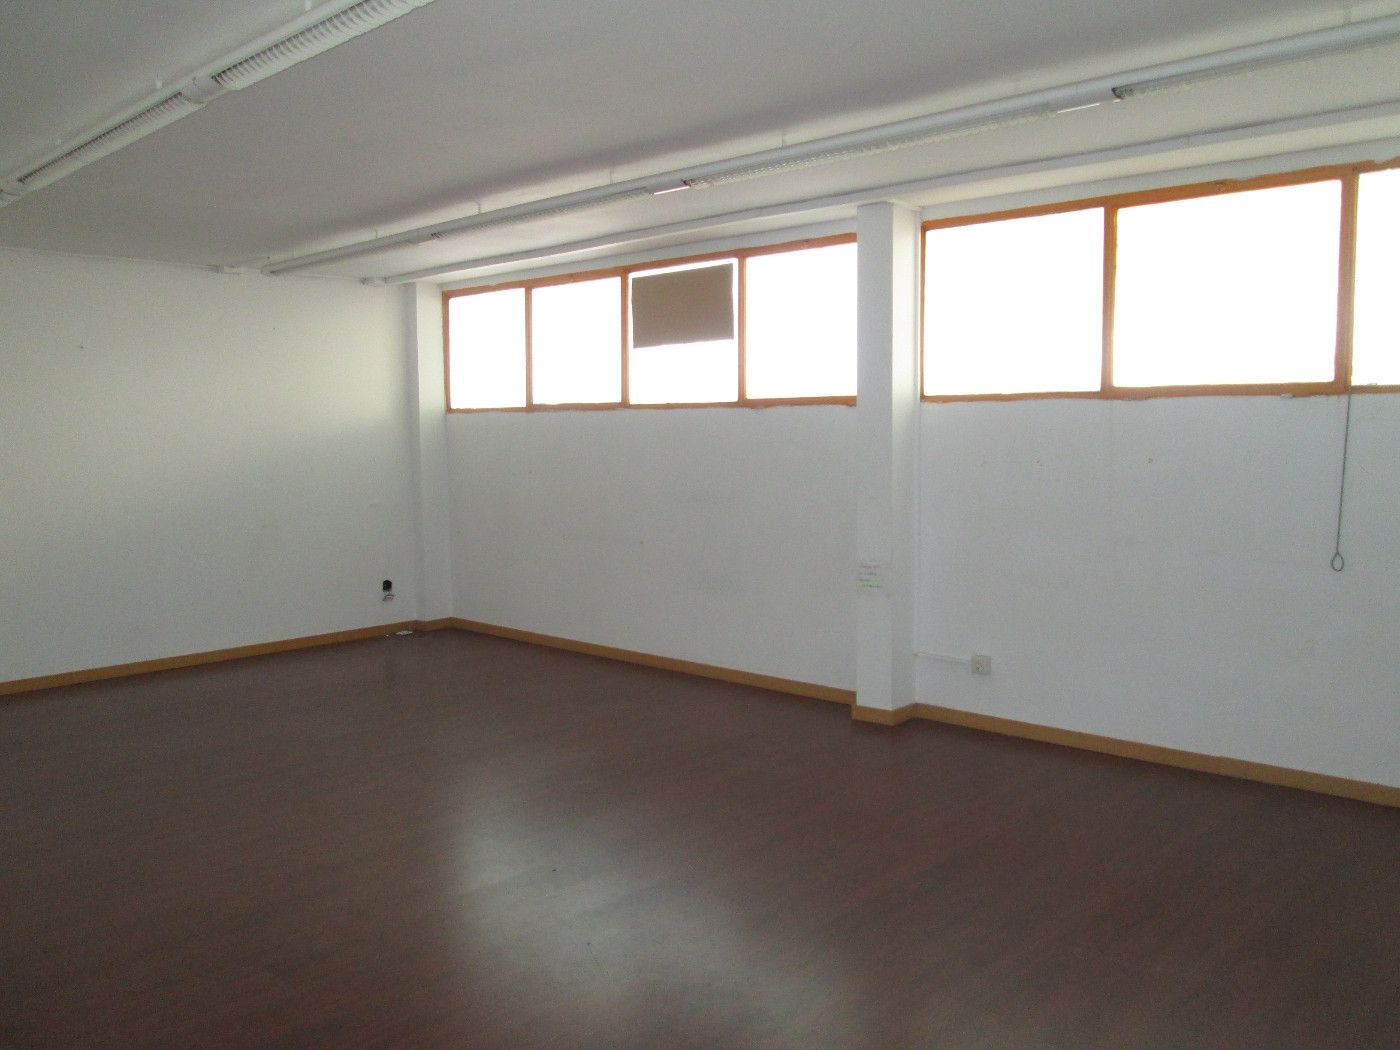 Rent Office space in Santander, 101. Oficina 215 m2 c/santander